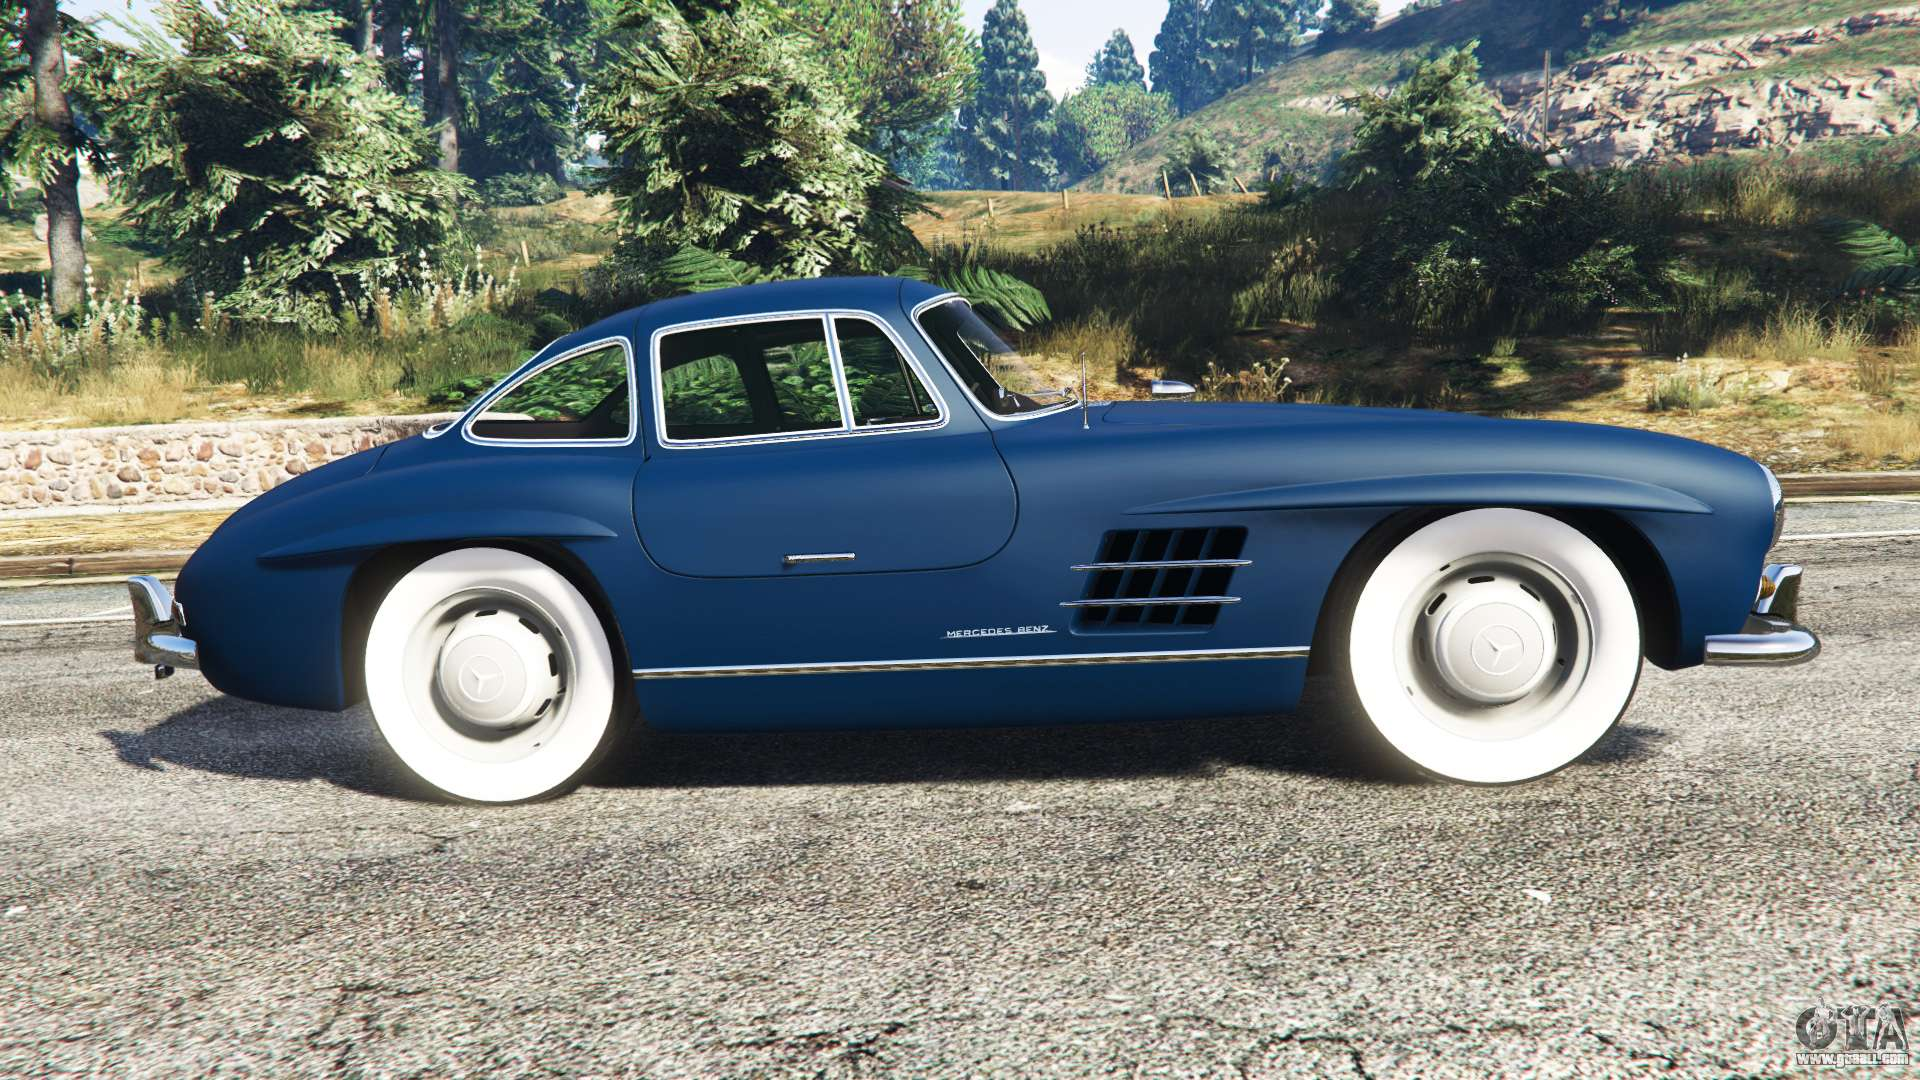 Mercedes benz 300sl gullwing 1955 for gta 5 for Mercedes benz gullwing 1955